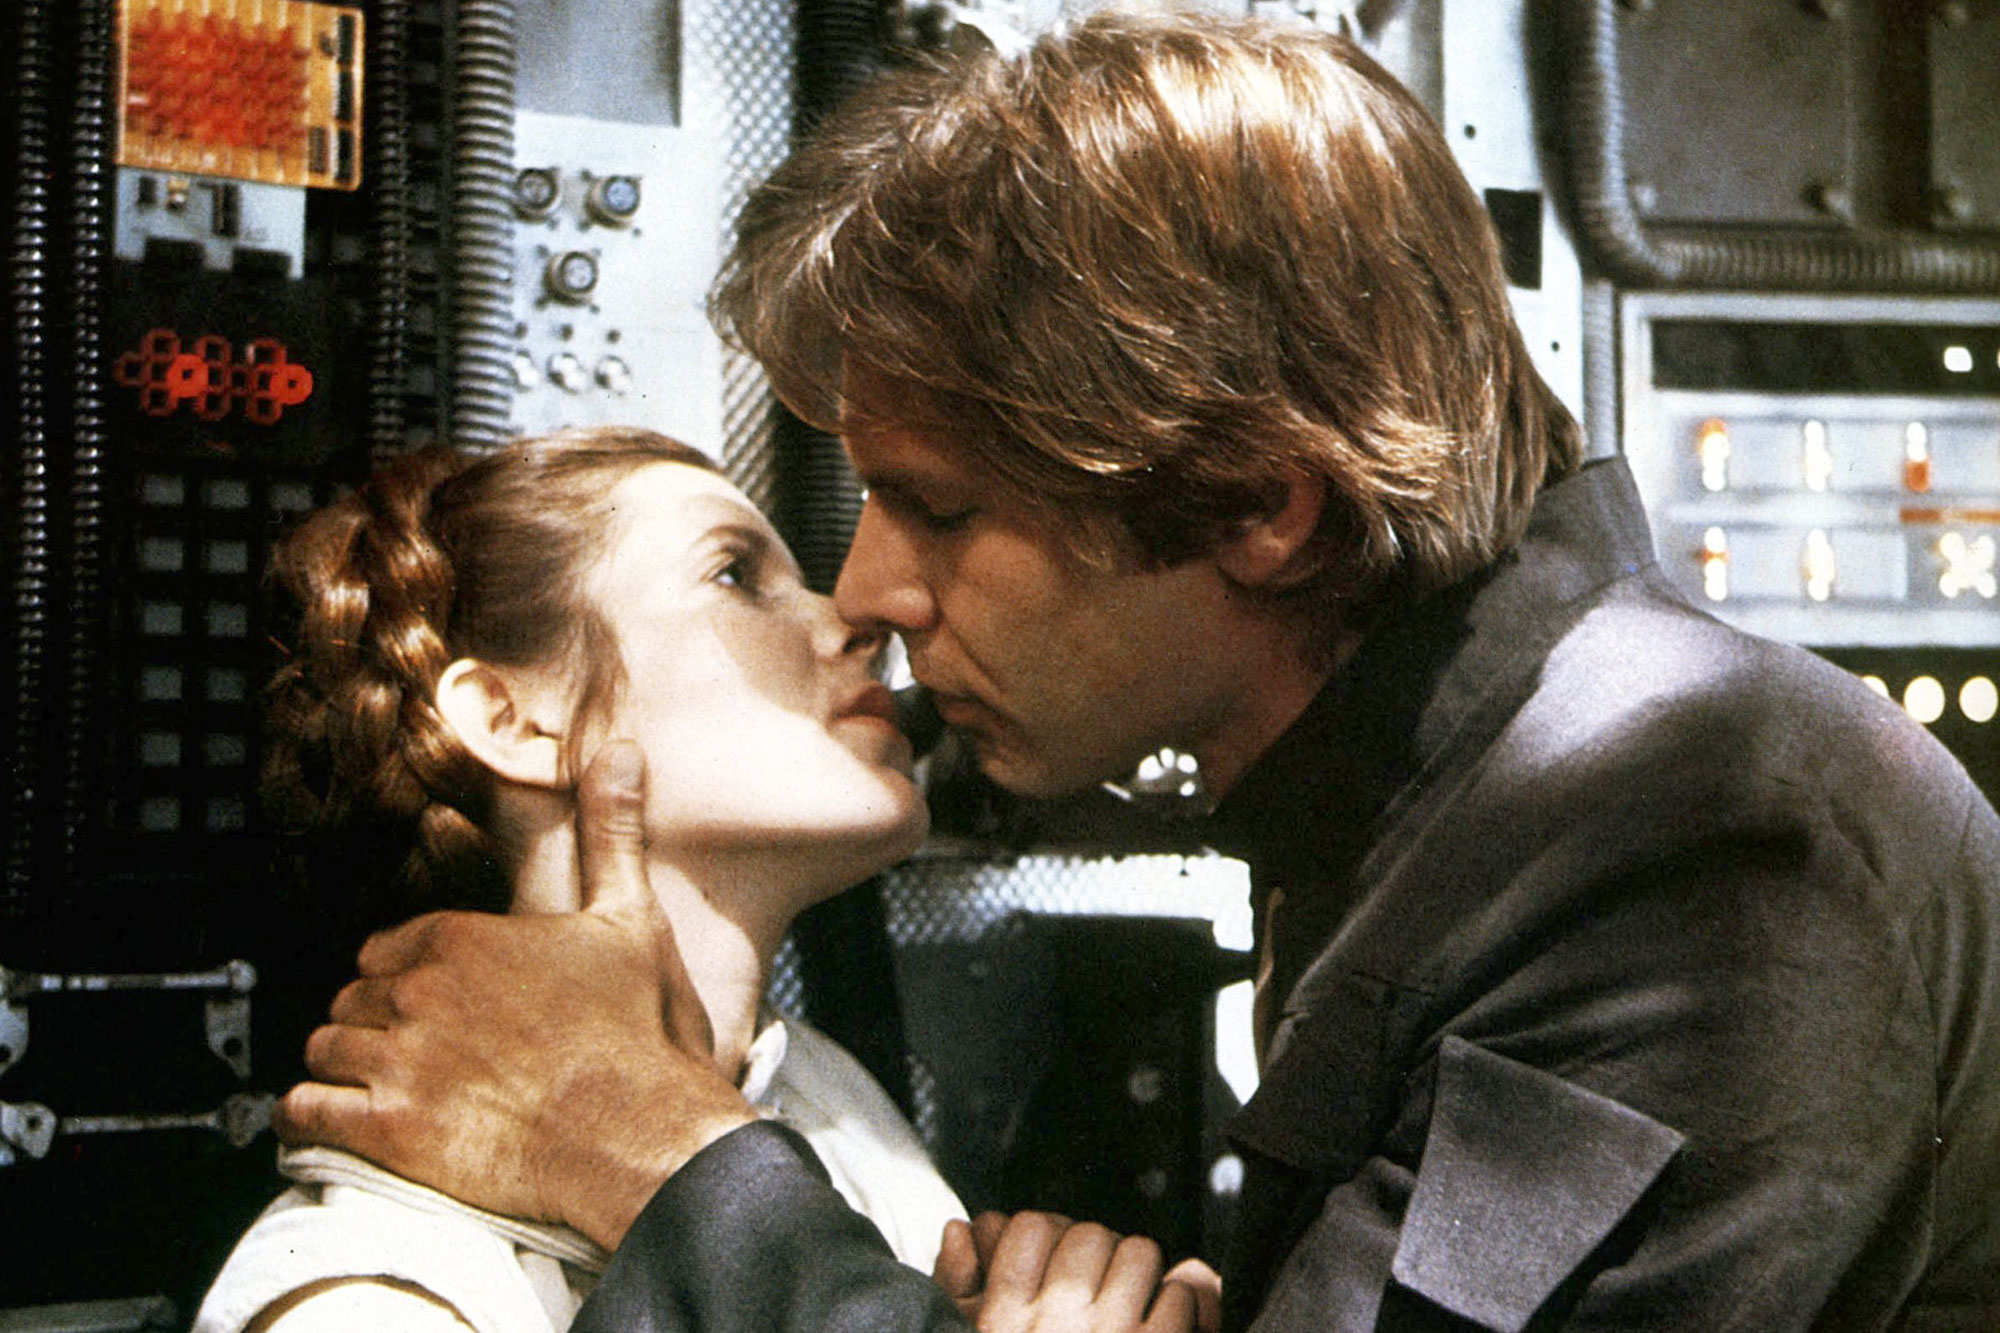 1E8706B0 STAR WARS EPISODE V - THE EMPIRE STRIKES BACK US 1980 CARRIE FISHER as Princess Leia HARRISON FORD as Han Solo STAR WARS EPISODE V - THE EMPIRE STRIKES BACK US 1980 CARRIE FISHER as Princess Leia HARRISON FORD as Han Solo Date 1980, , Photo by: Mary Evans/LUCASFILM/Ronald Grant/Everett Collection(10312456) STAR WARS: EPISODE V - THE EMPIRE STRIKES BACK Photo by: Mary Evans HTRA181 VV109